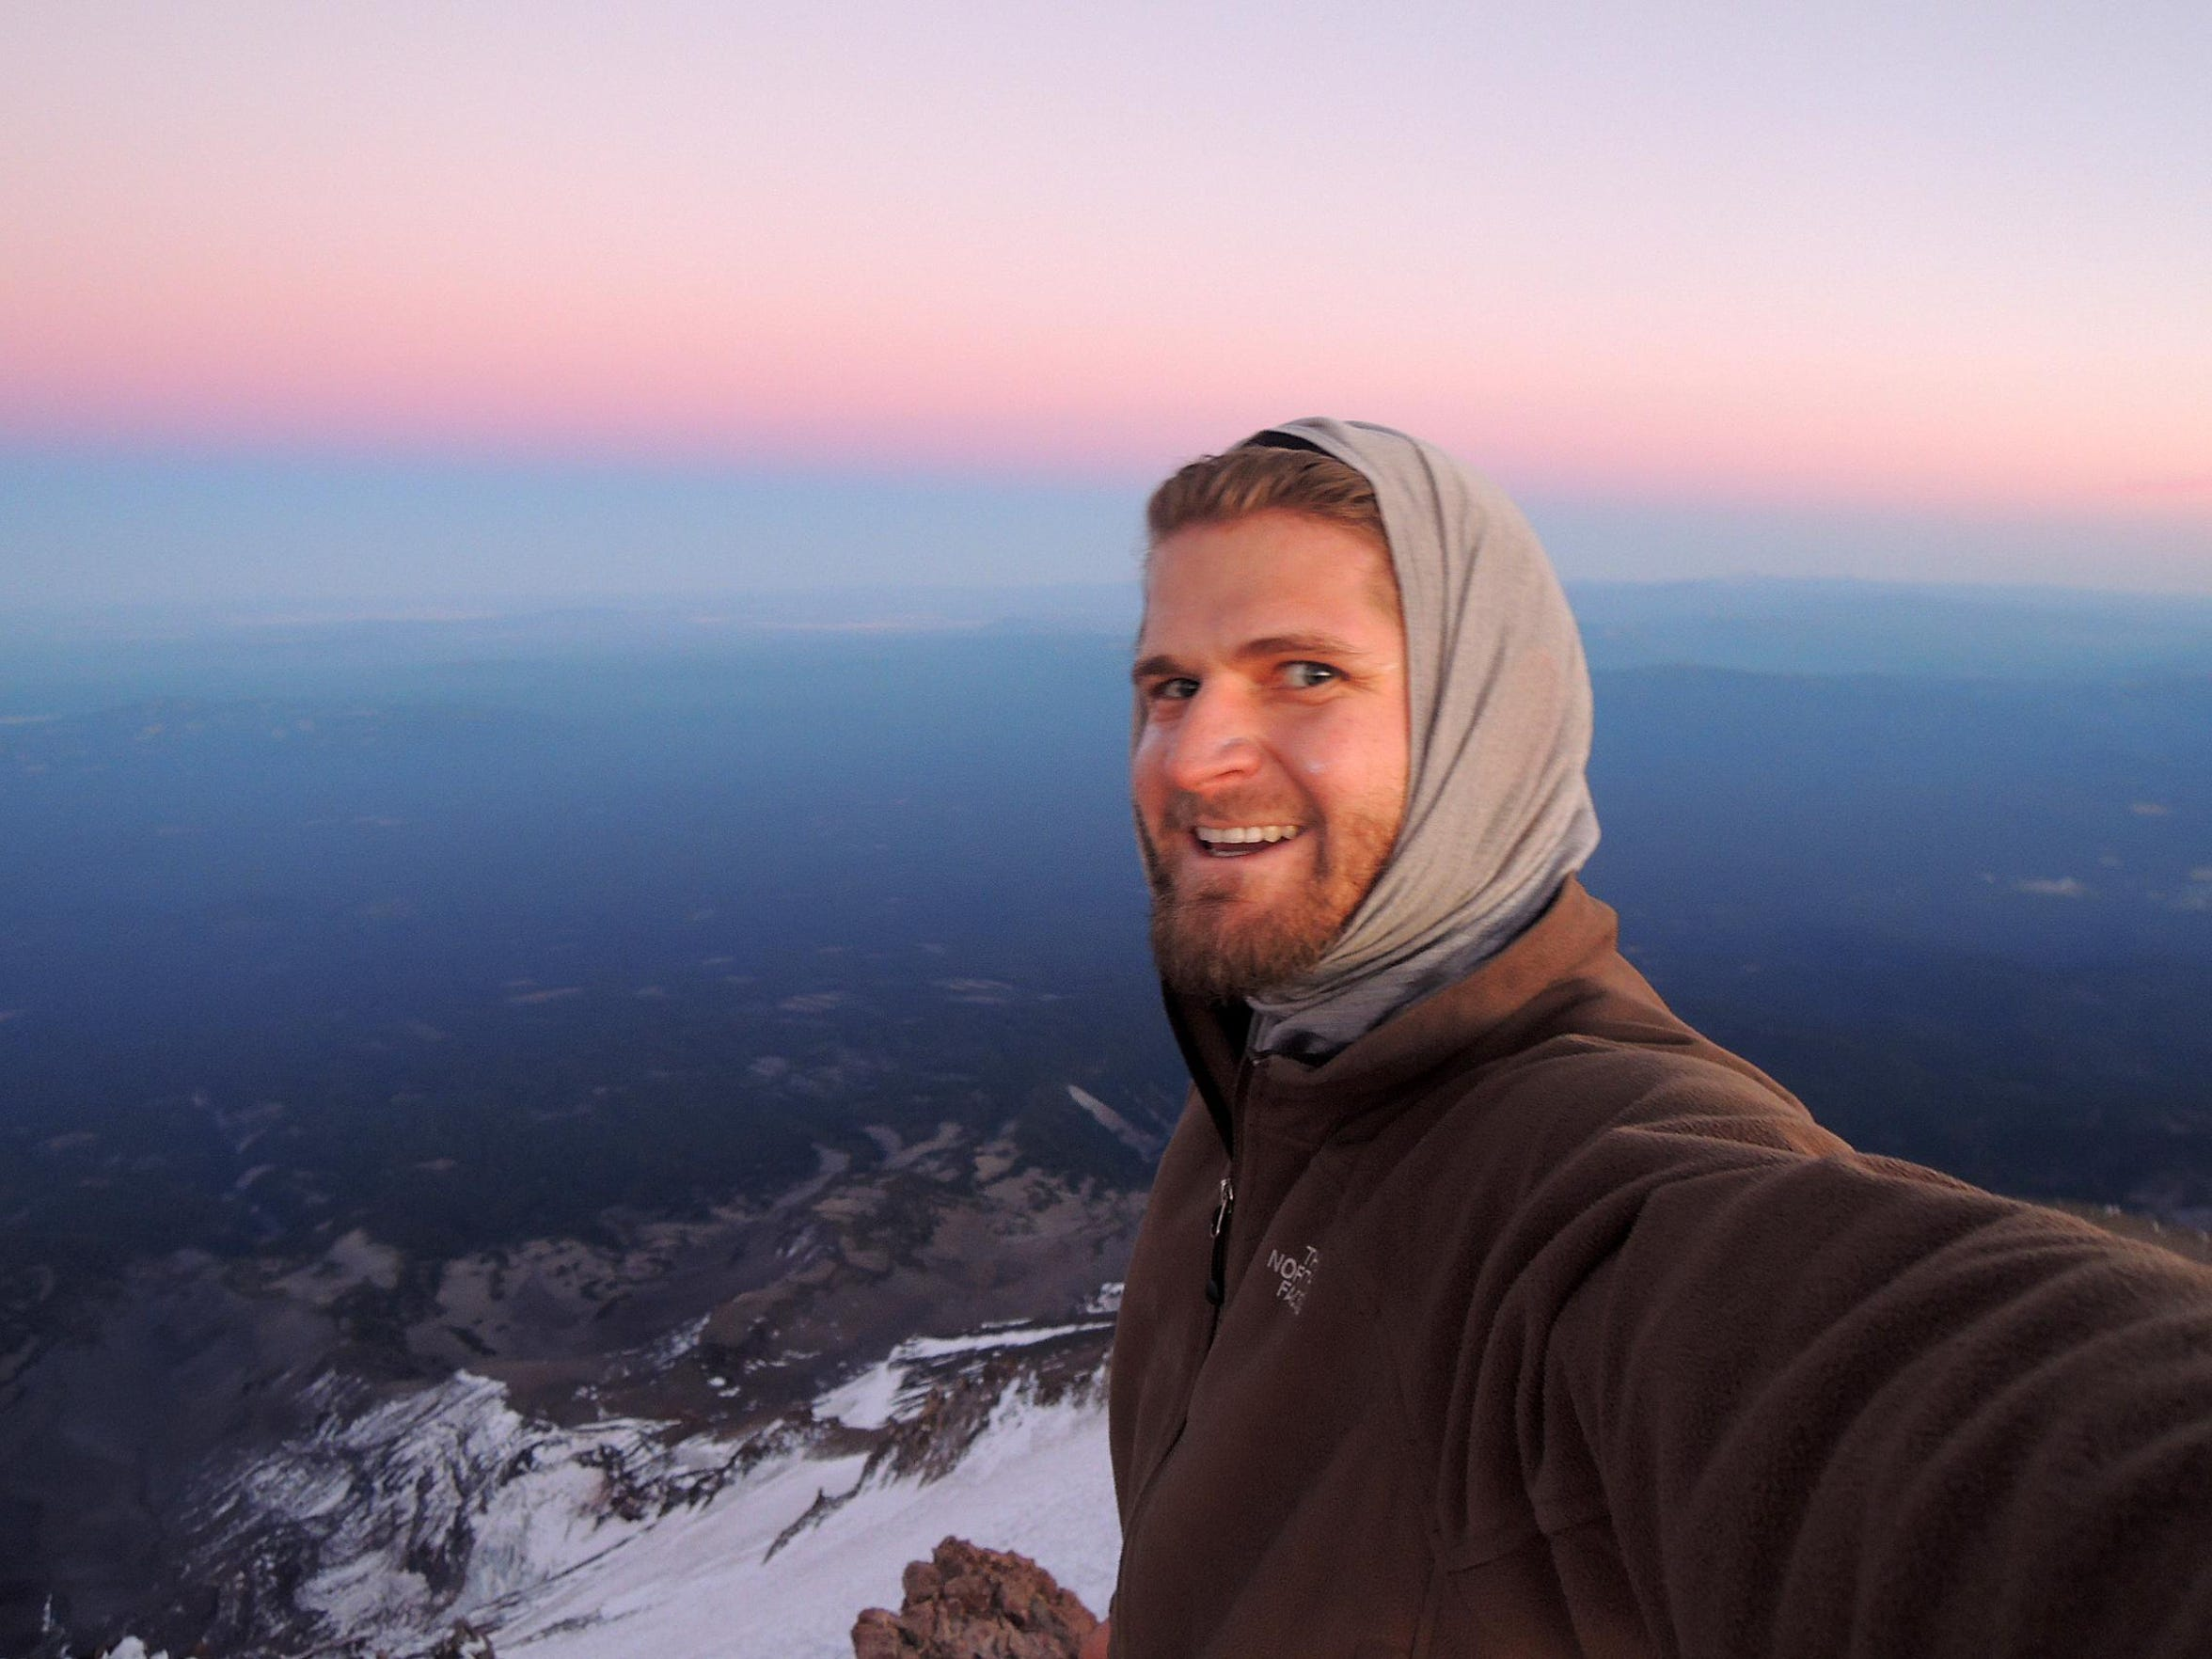 Tommy Fountain takes a selfie from the summit of Mount Shasta in September of 2014.